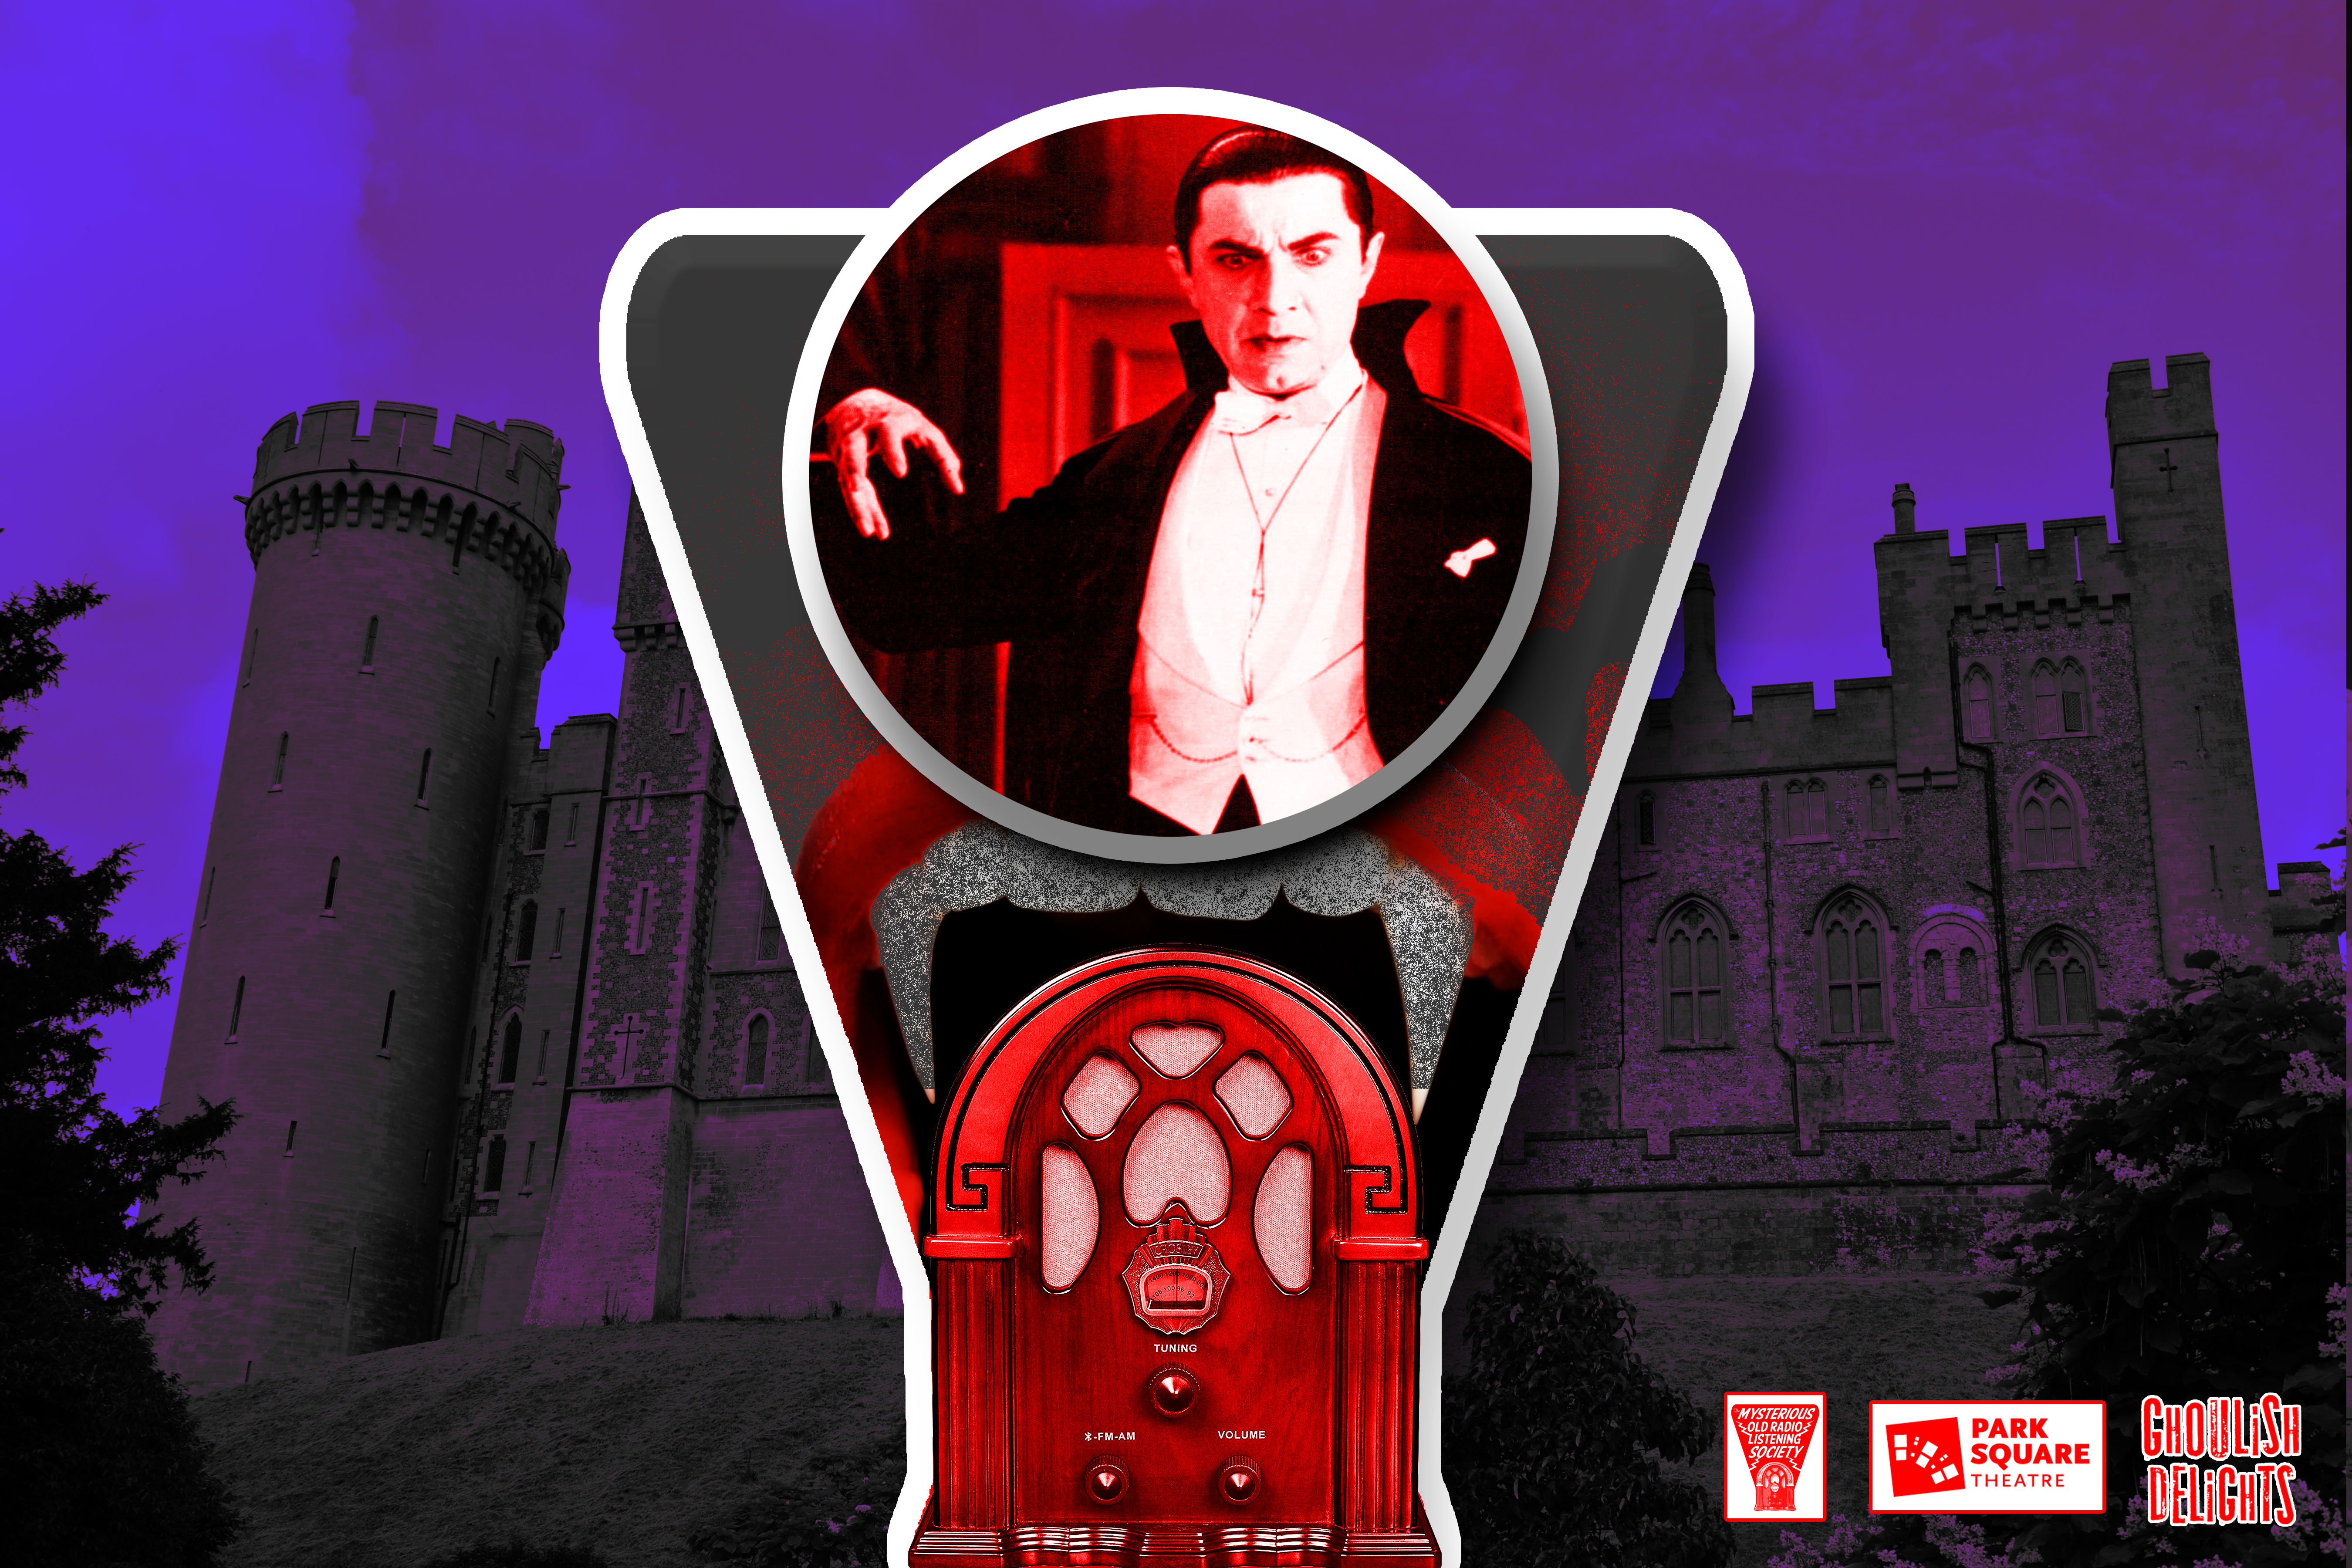 A vintage radio with the dial replace by an image of Dracula.